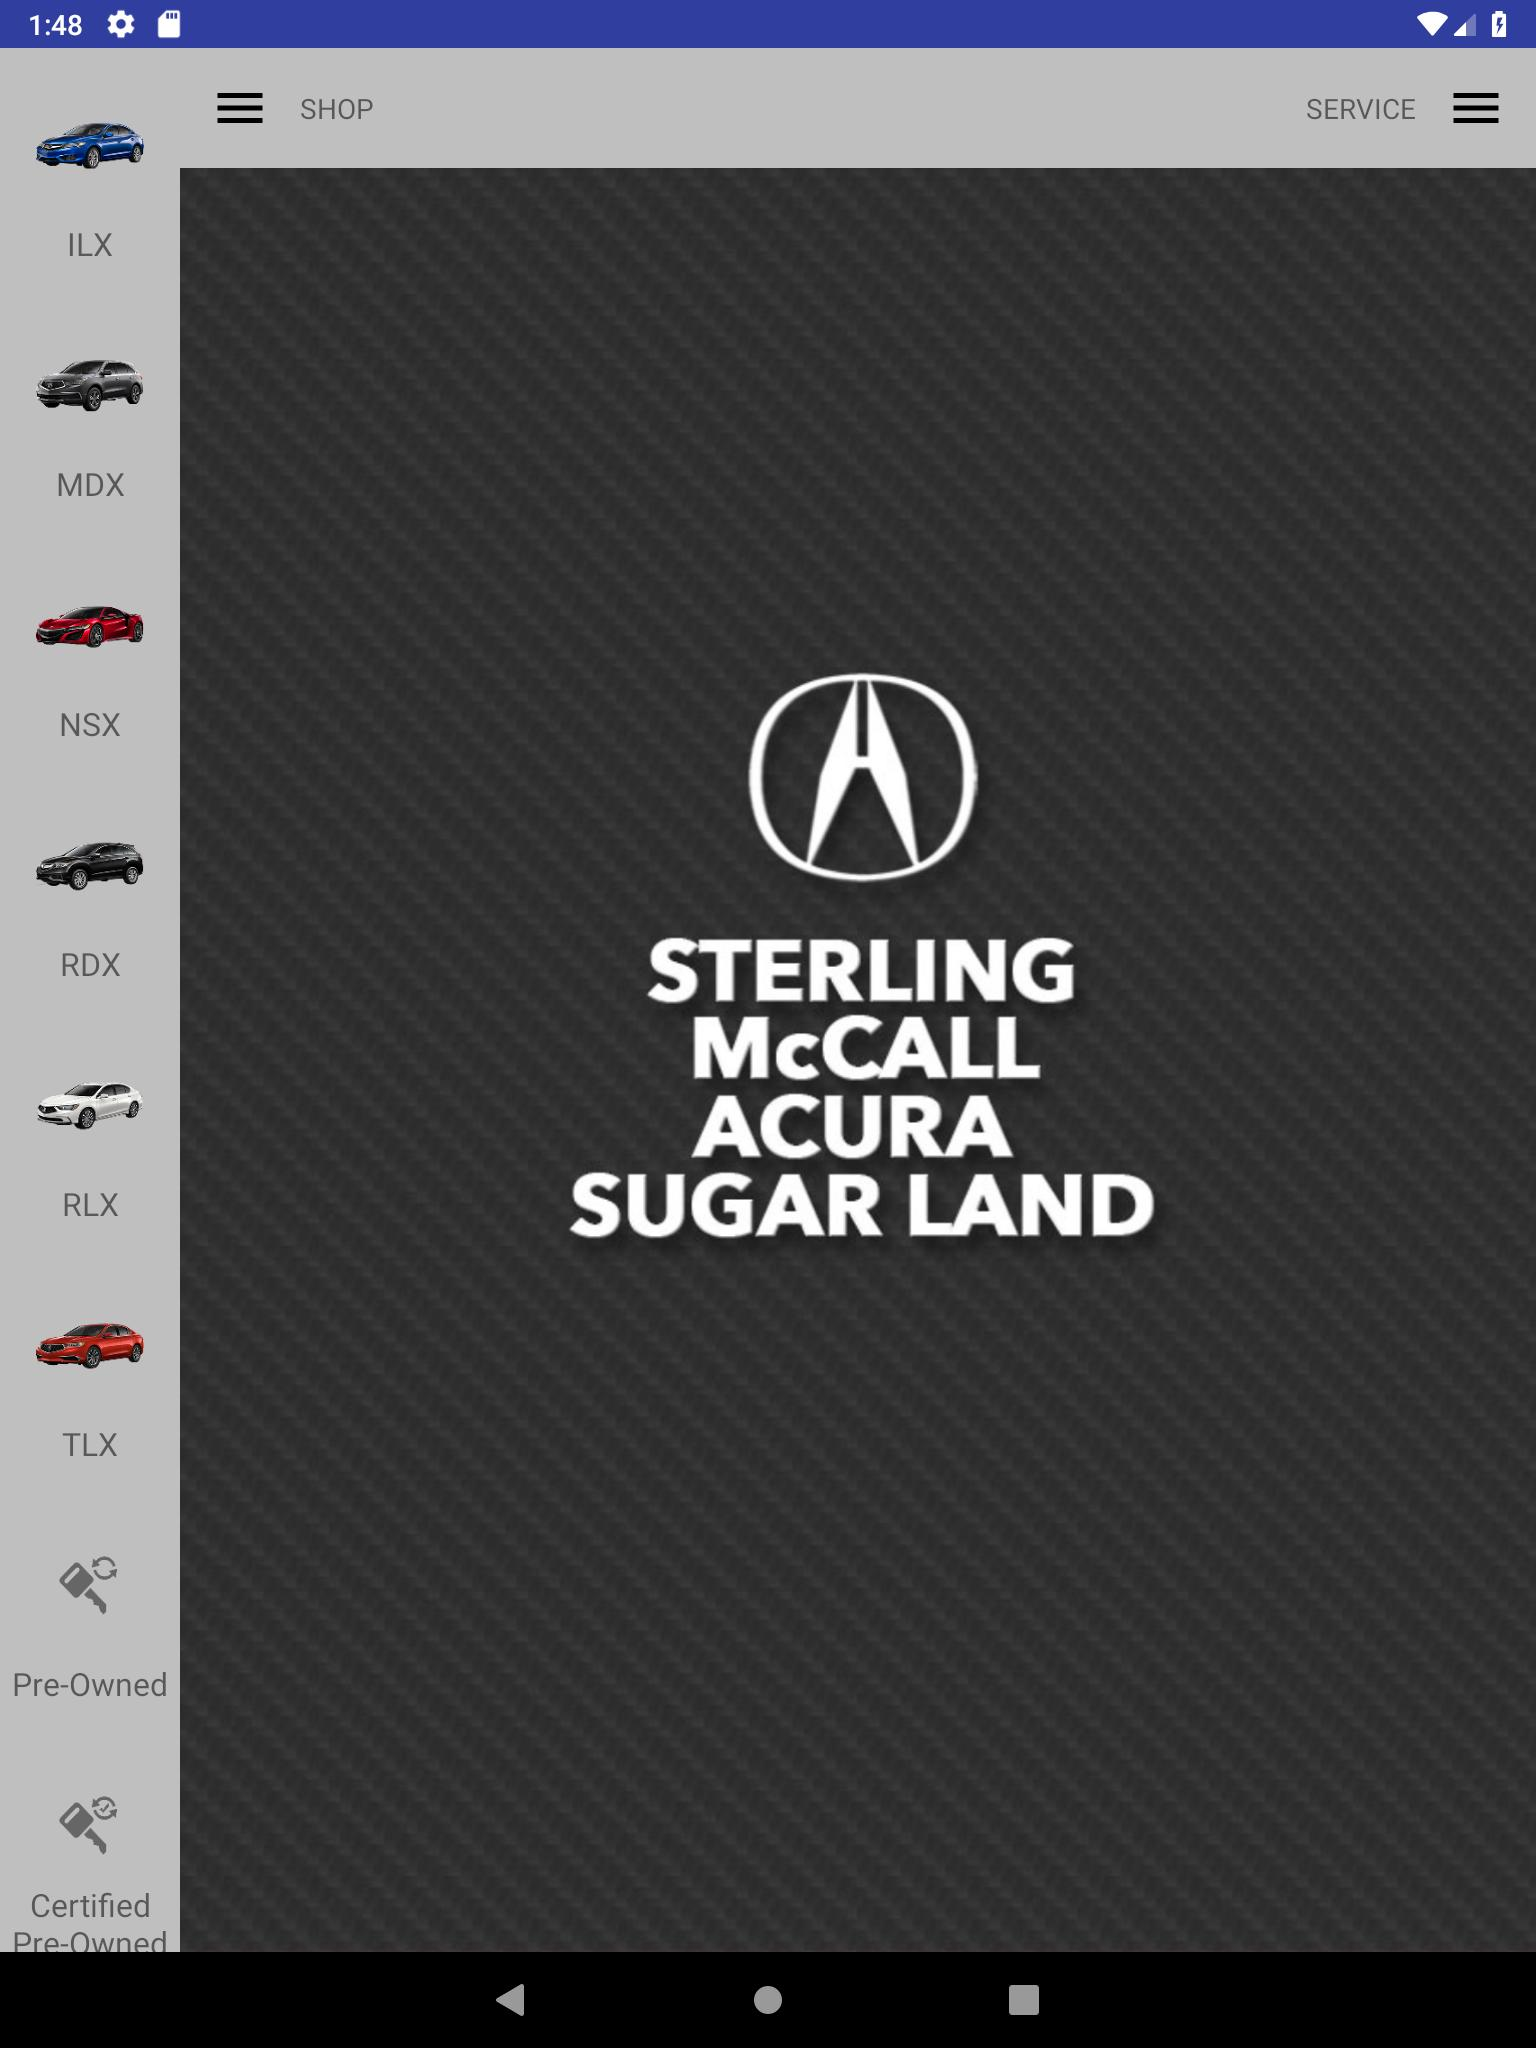 Sterling Mccall Acura >> Sterling Mccall Acura Of Sugar Land For Android Apk Download